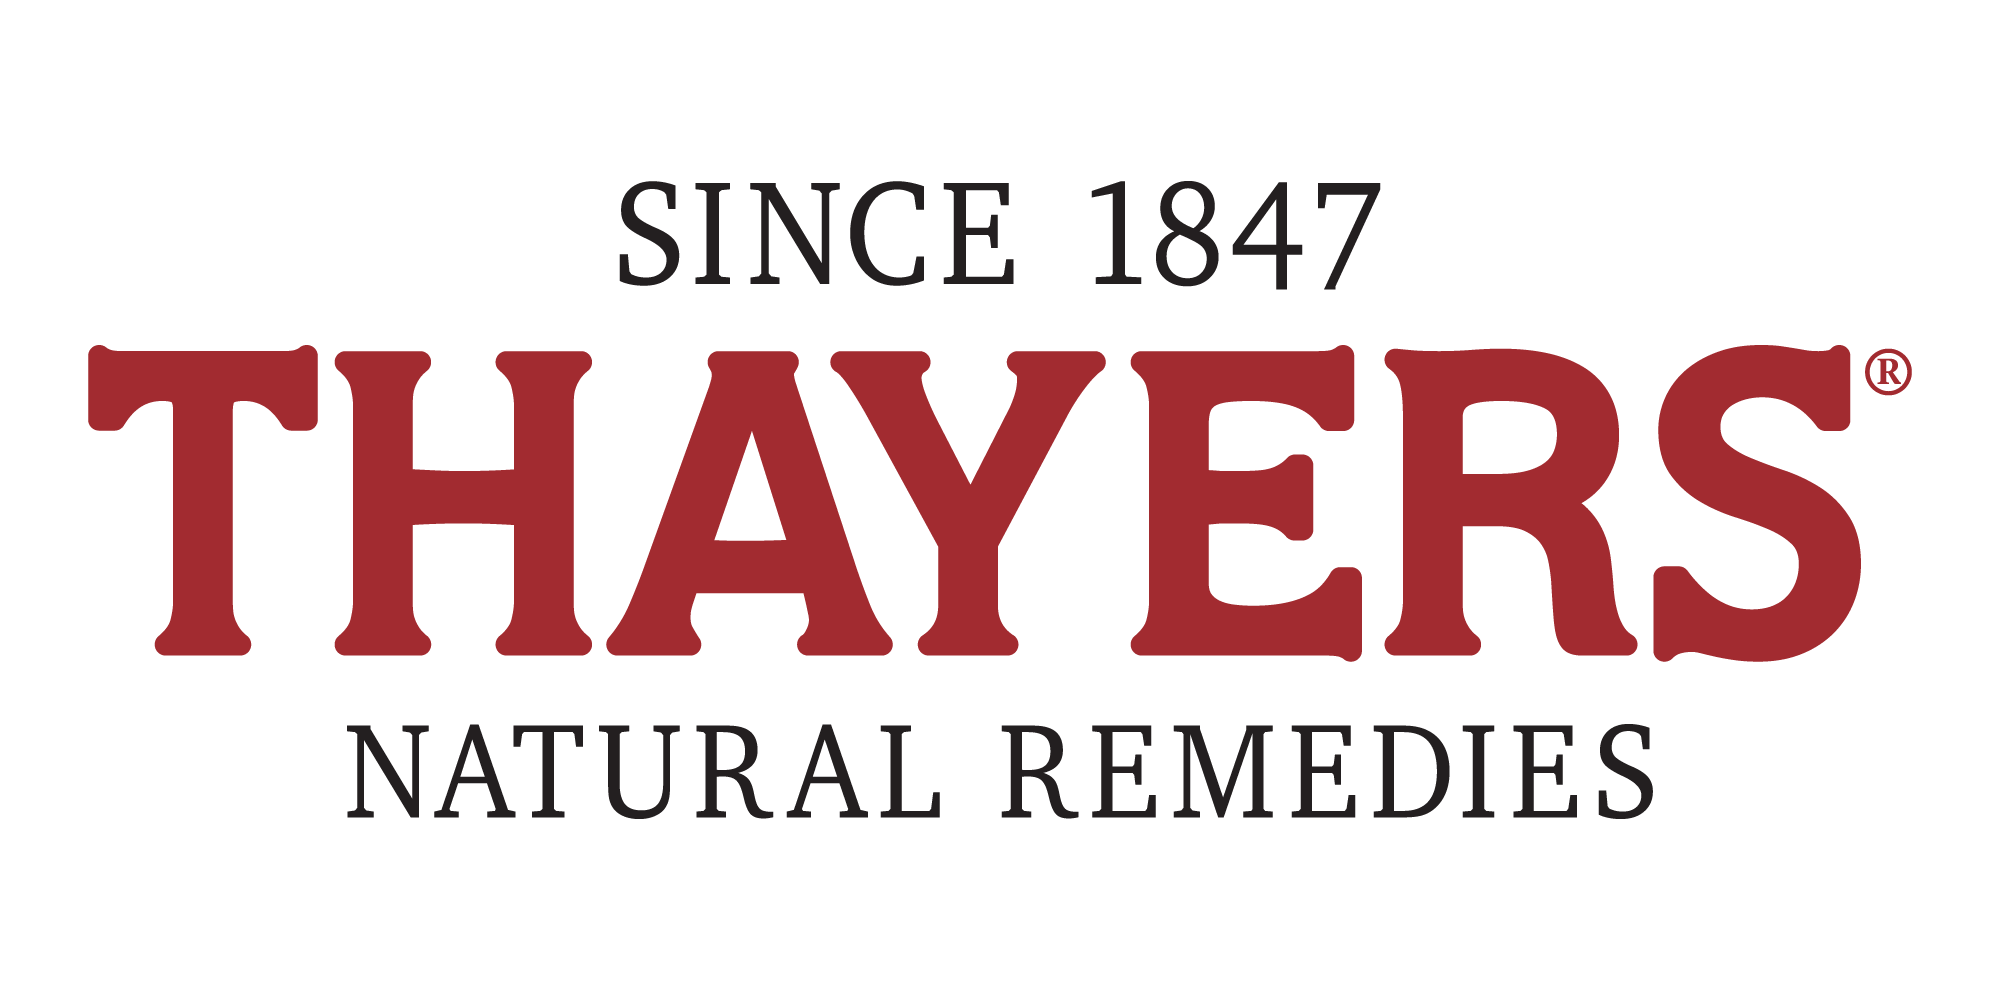 thayer chat Find houses for sale in your area - thayer, mo contact a local agent on homefinder.